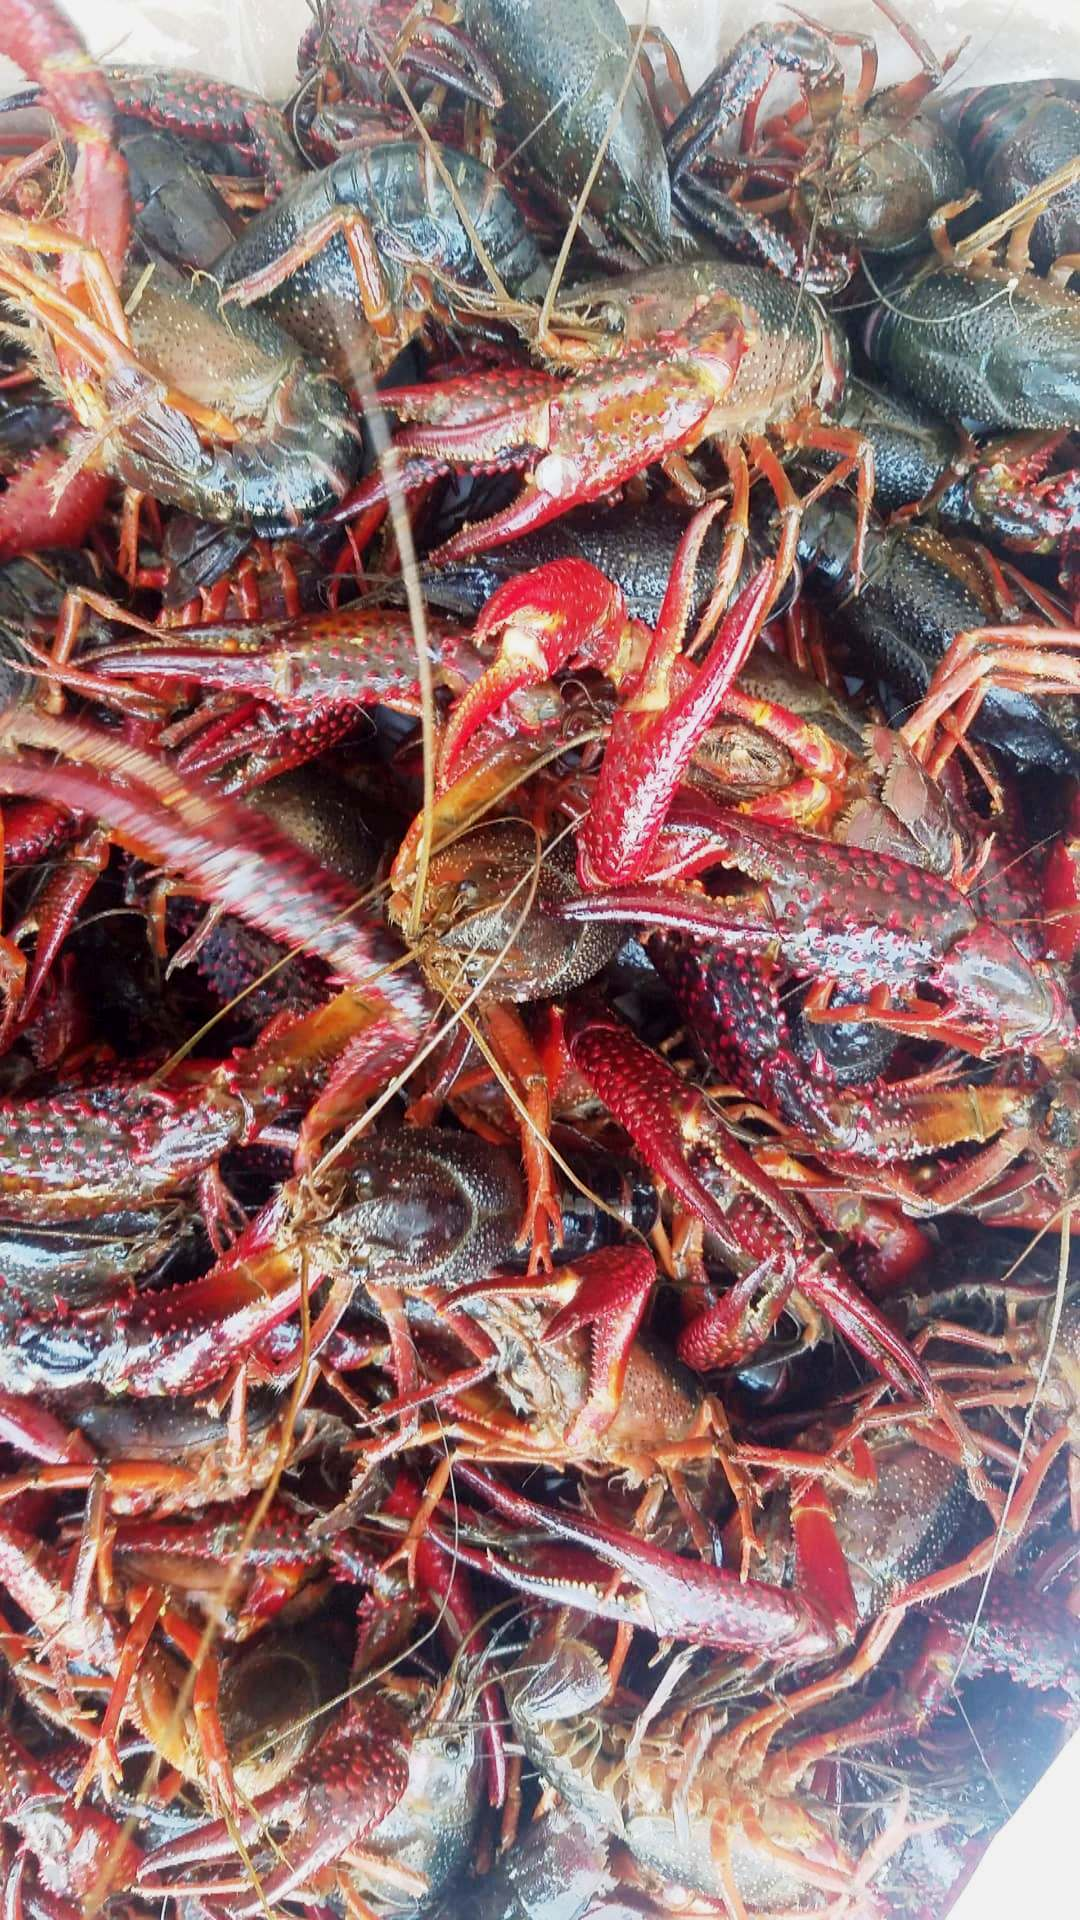 9a0998a2e The Only Company with Live Crawfish Available Year Round